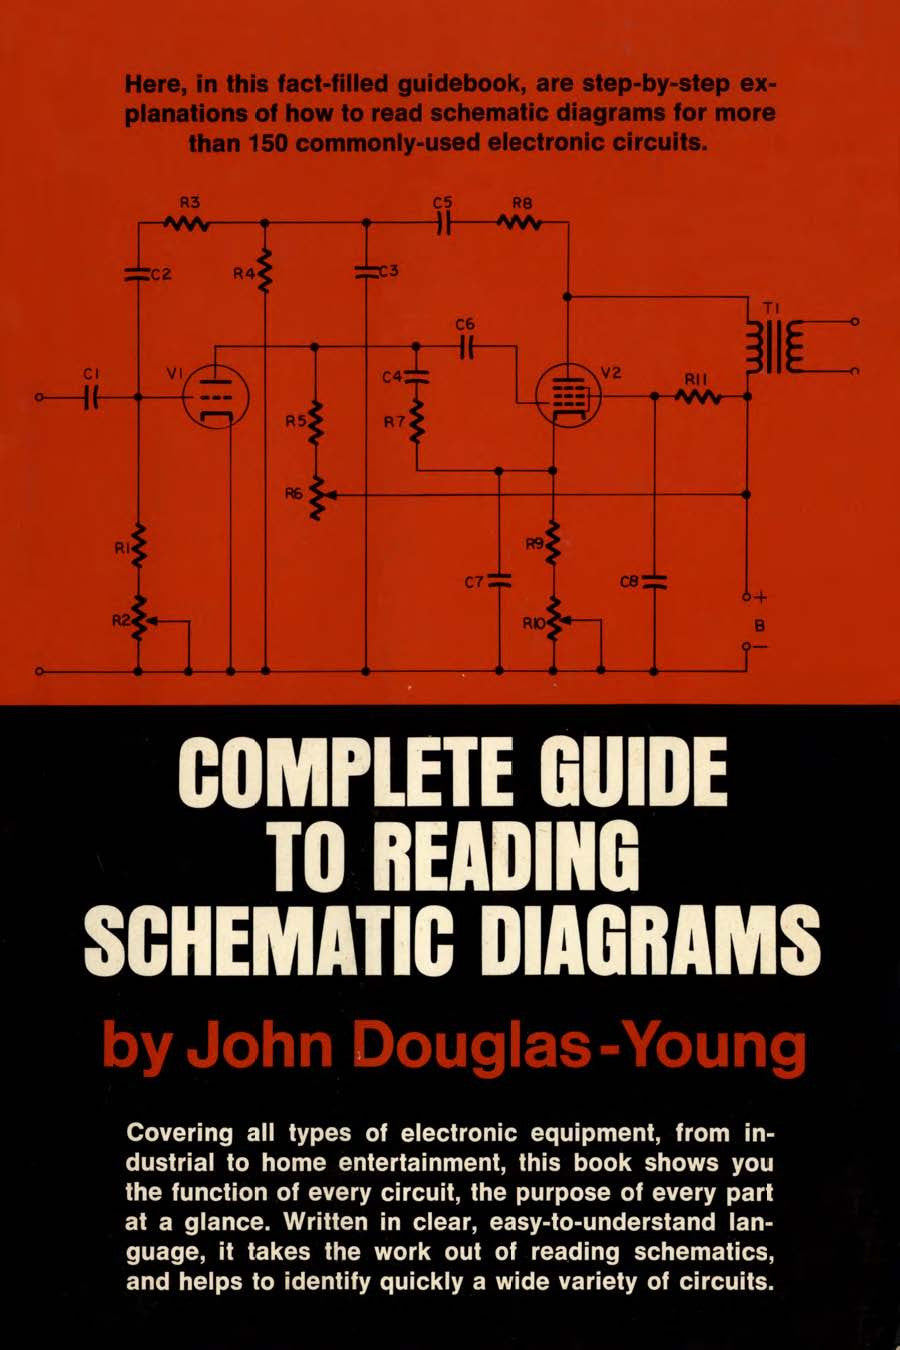 Complete Guide to Reading Schematics